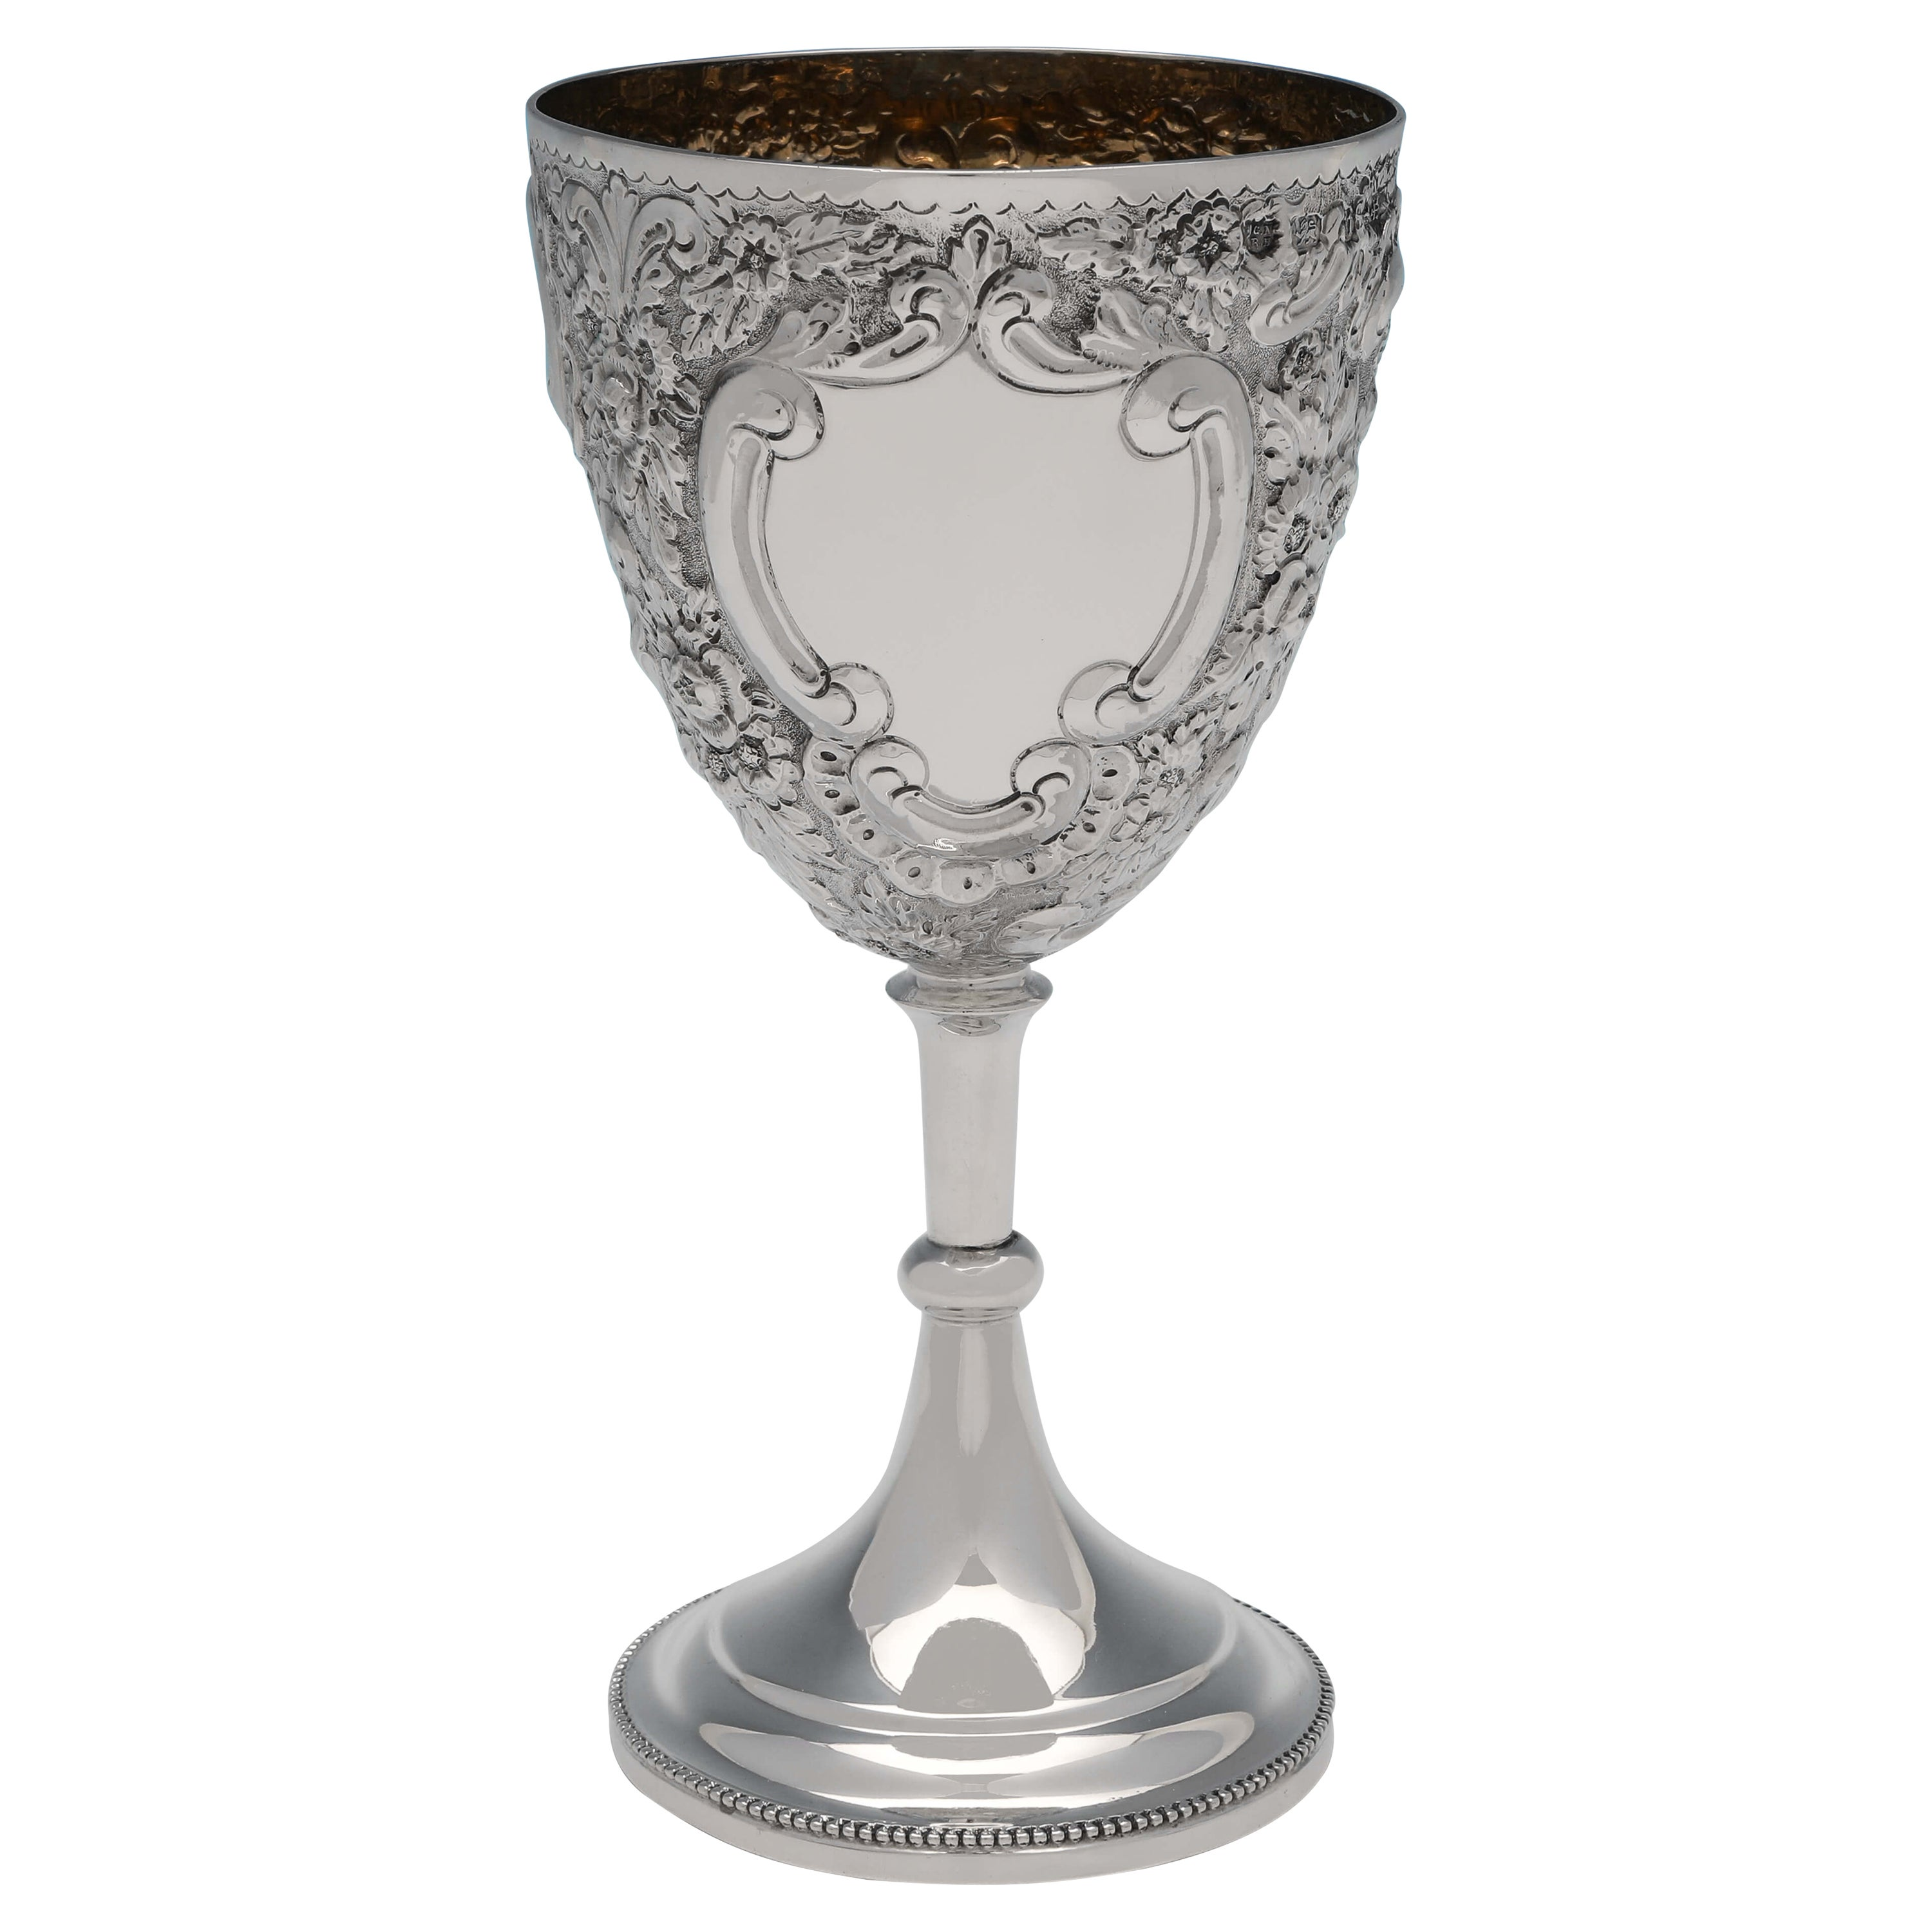 Victorian Antique Sterling Silver Goblet Hallmarked 1894 by Nathan & Hayes